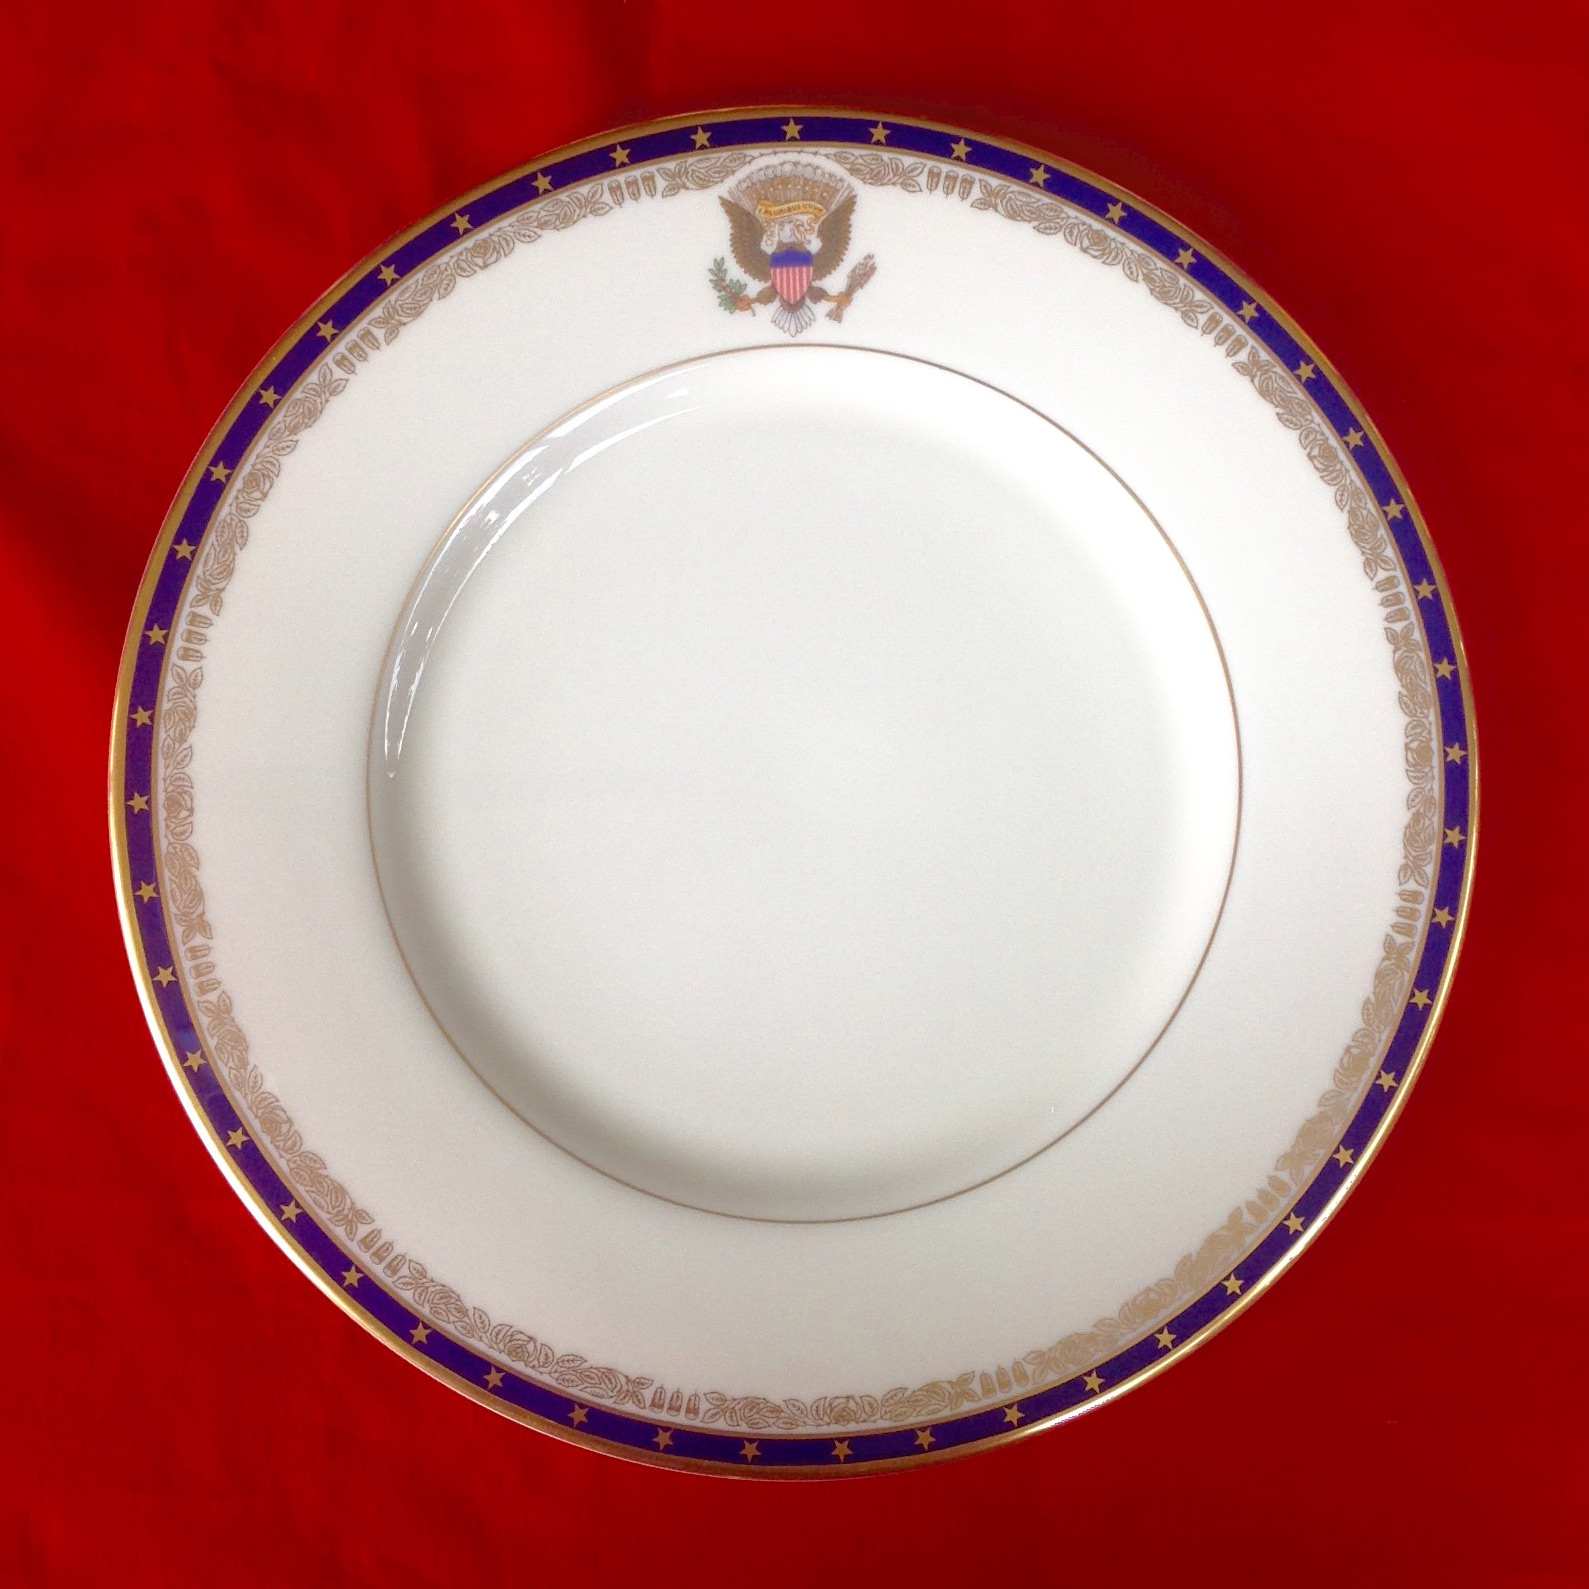 fdr official white house china